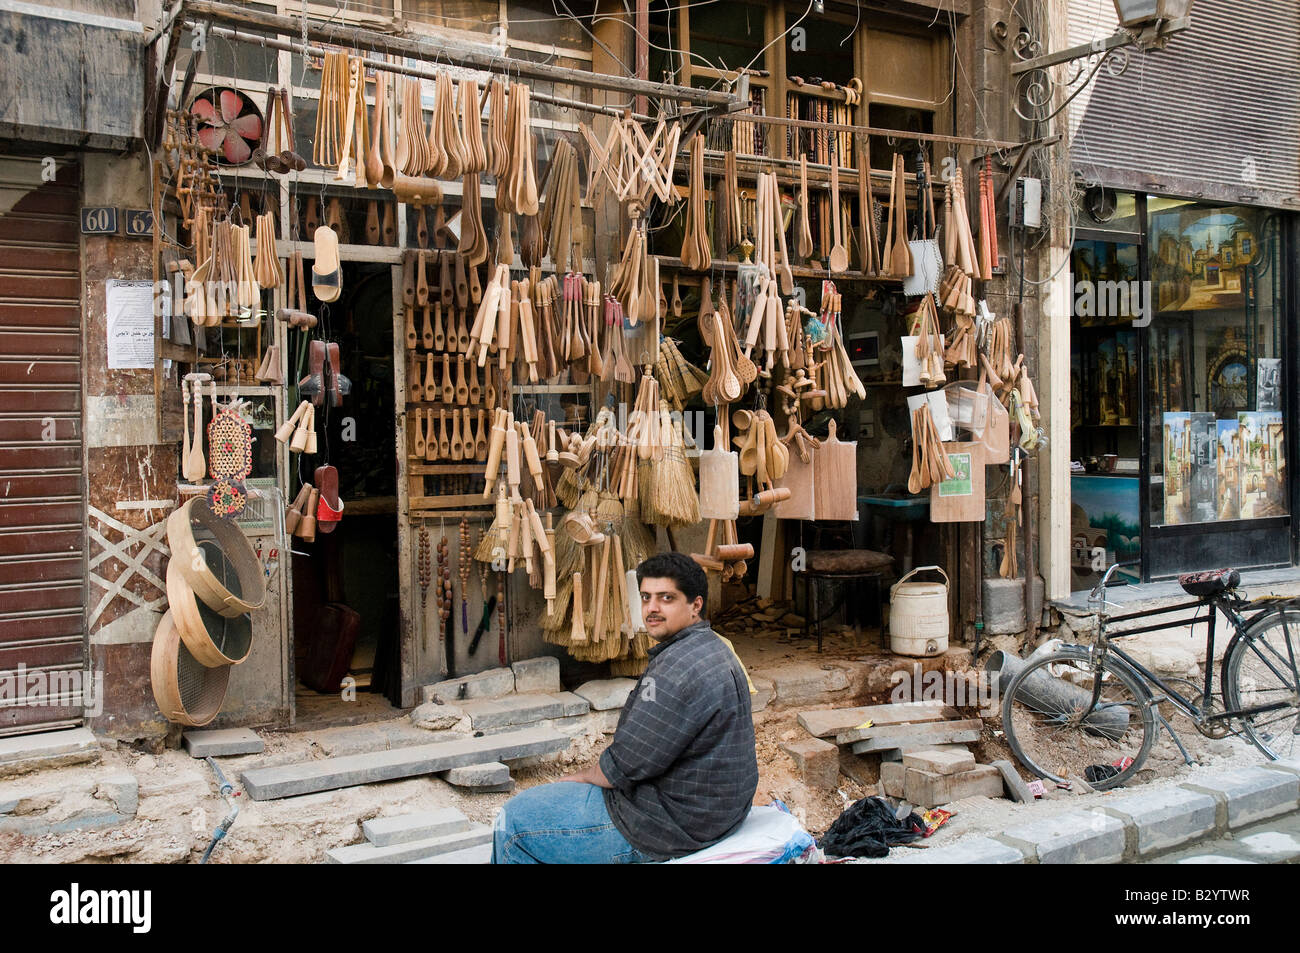 Shop Selling Kitchenware And Items In Wood In Center Of Damascus. Street  Being Repaired And Modernized